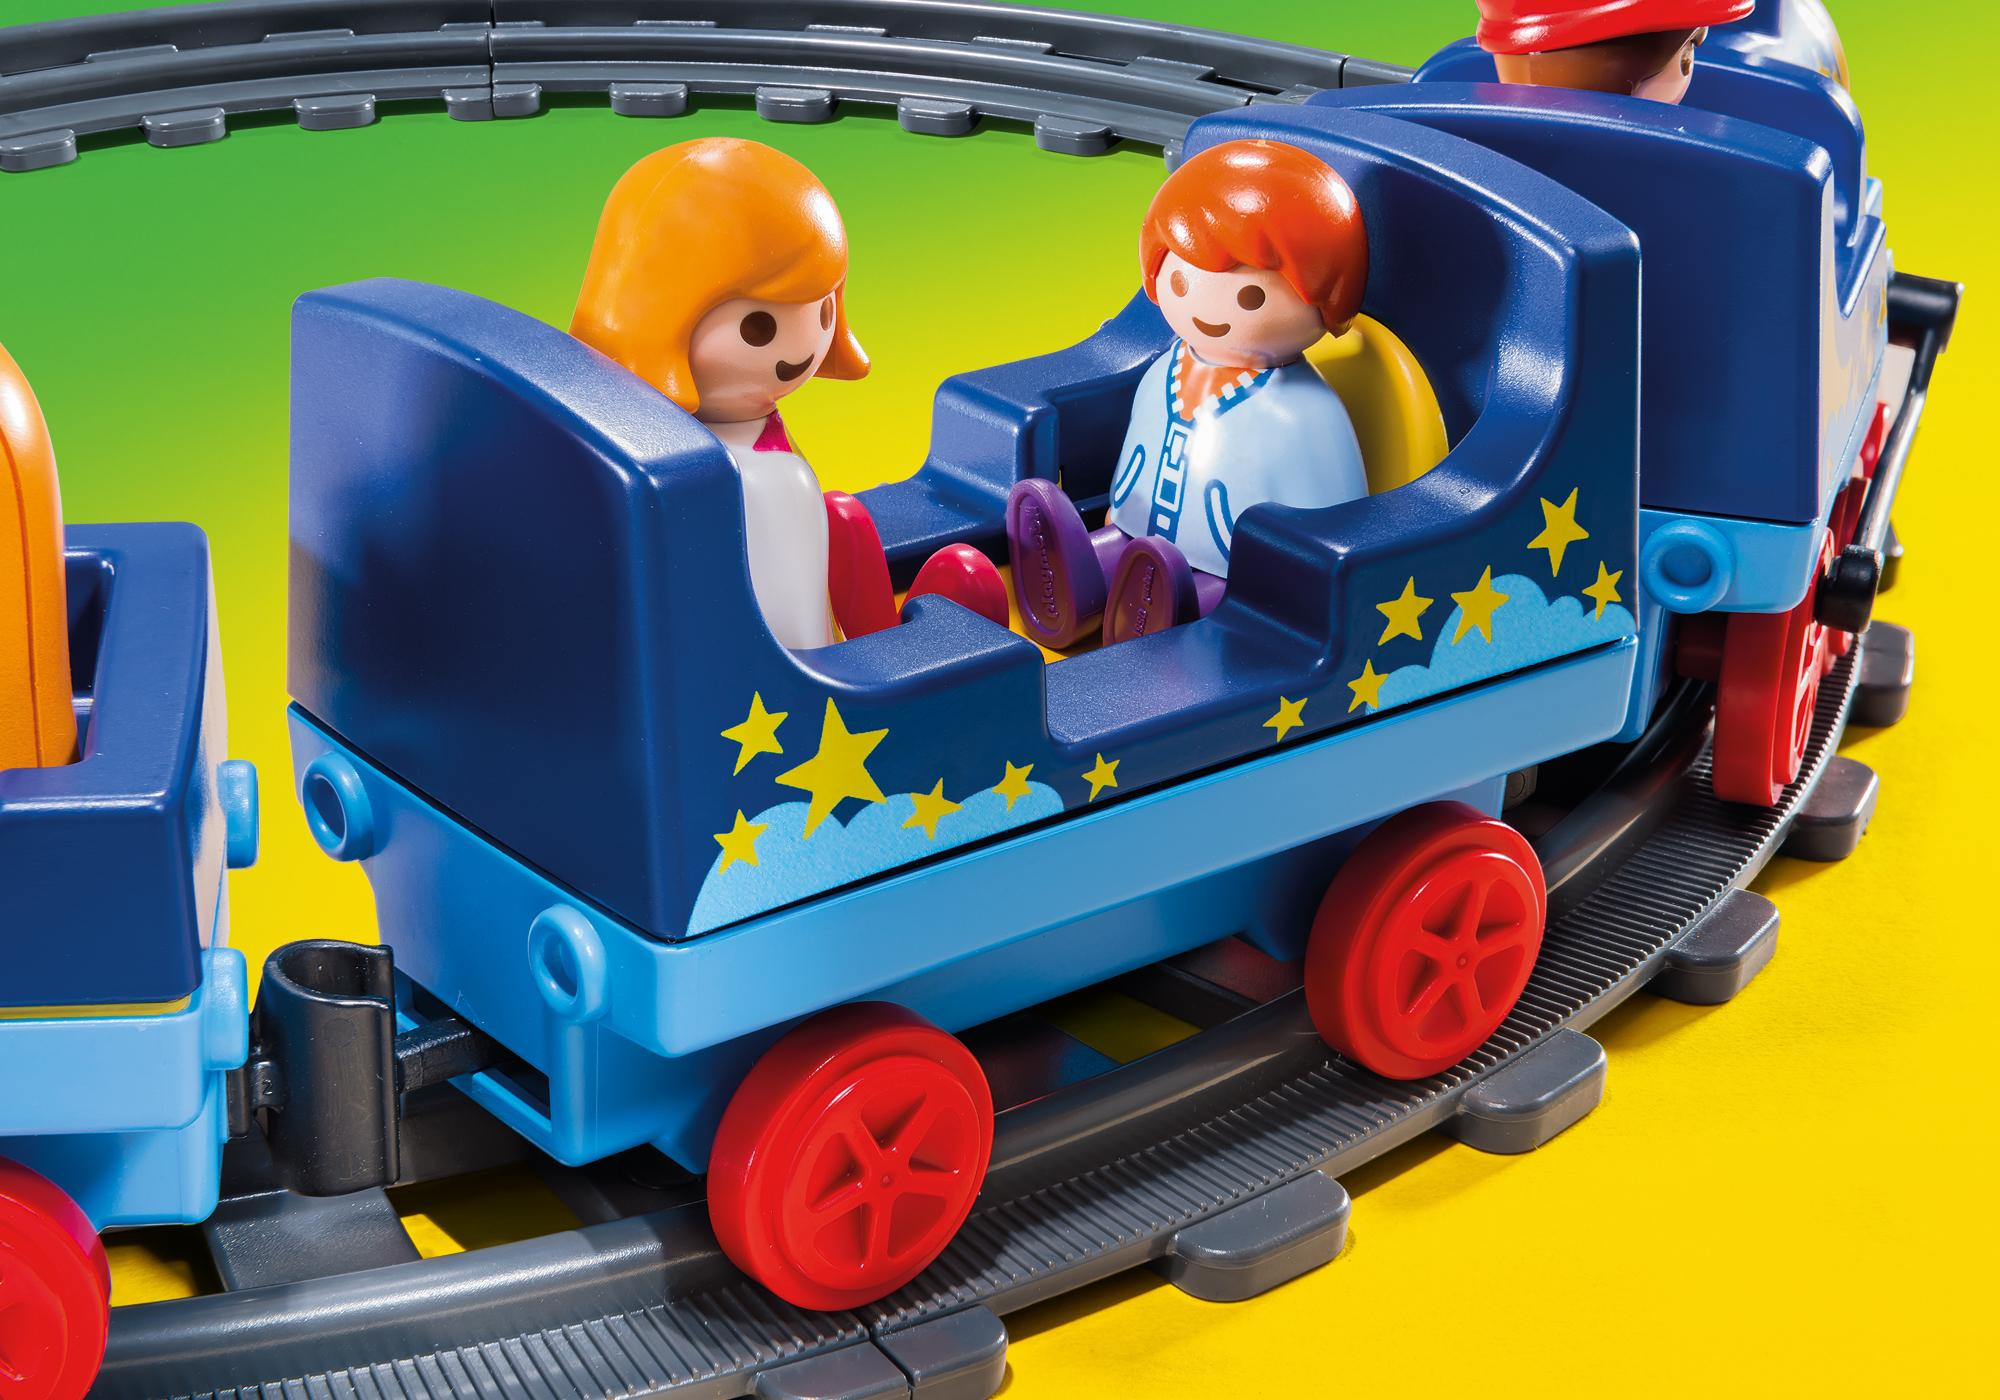 http://media.playmobil.com/i/playmobil/6880_product_extra1/Night Train with Track